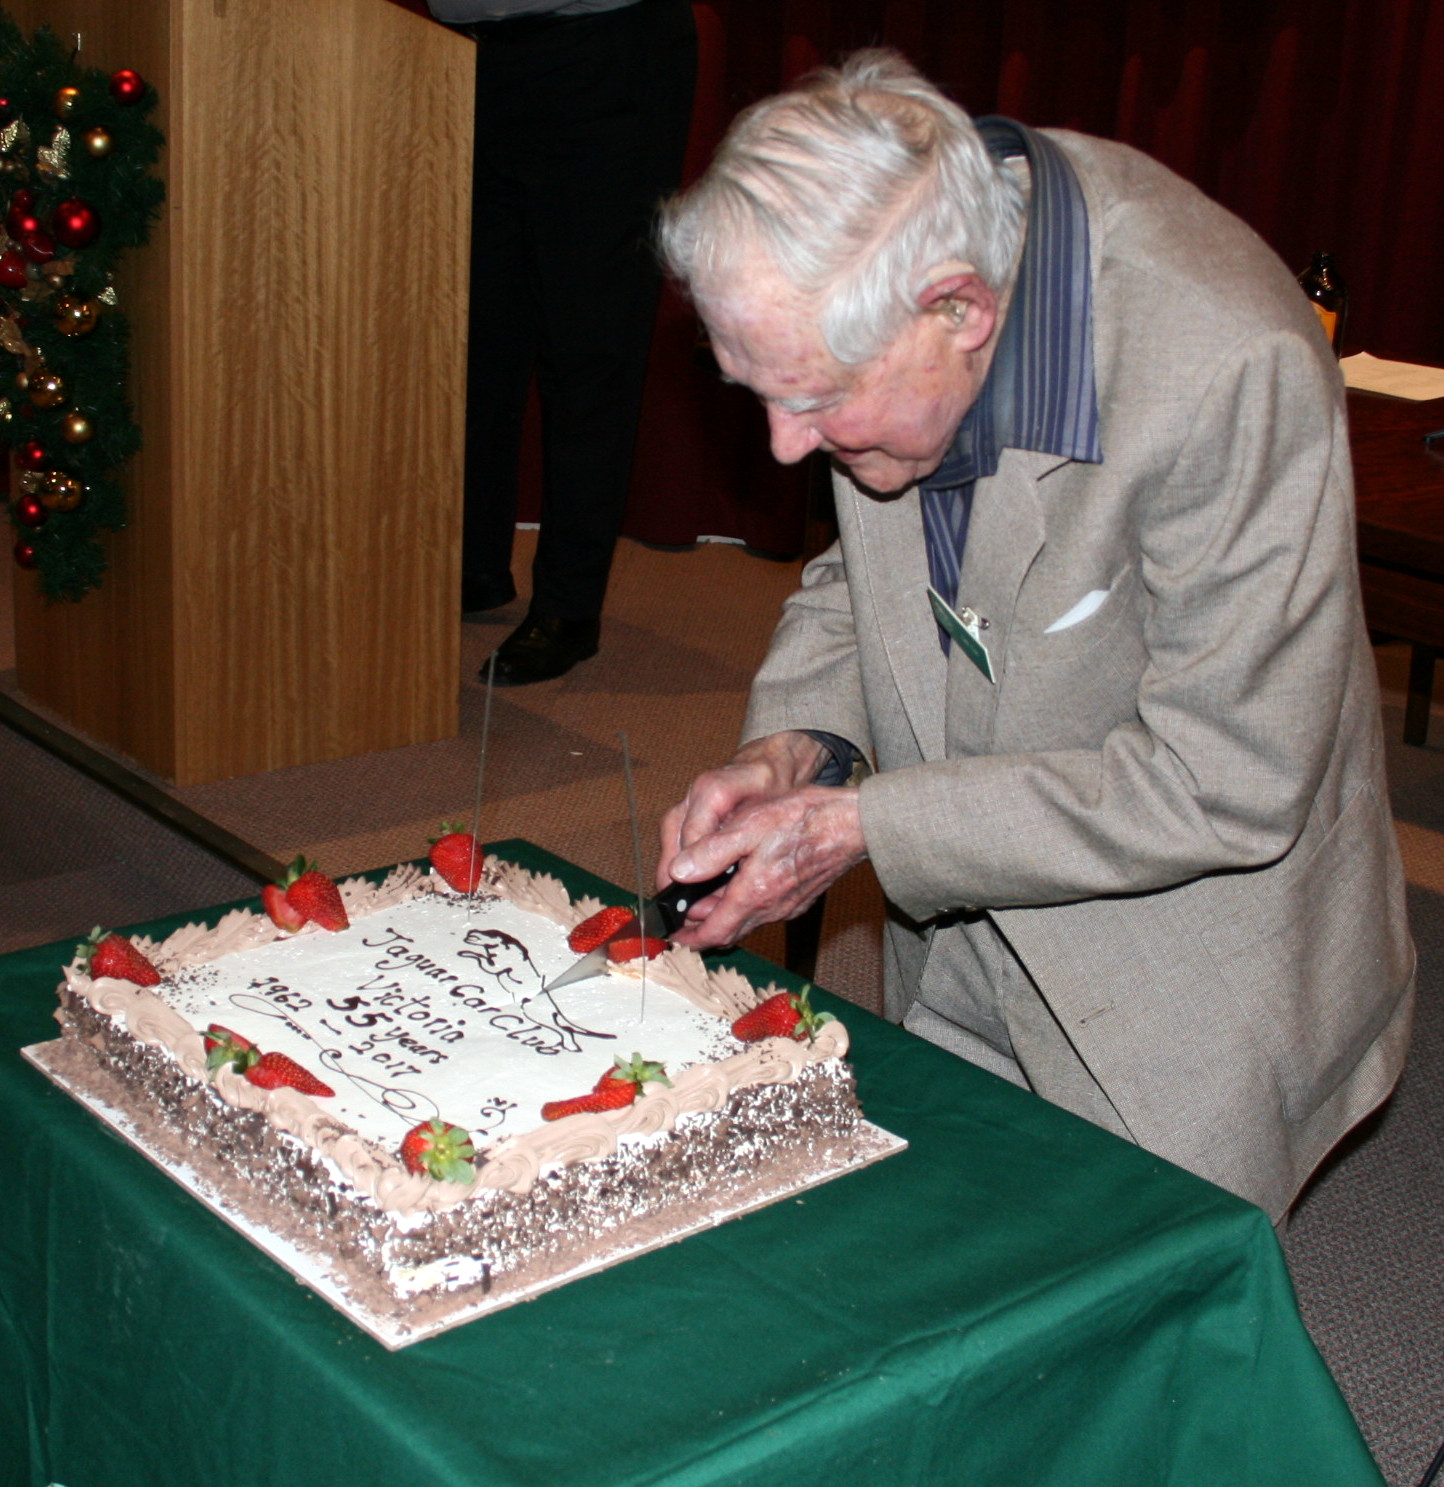 Clubs oldest member Len Coe cuts the cake